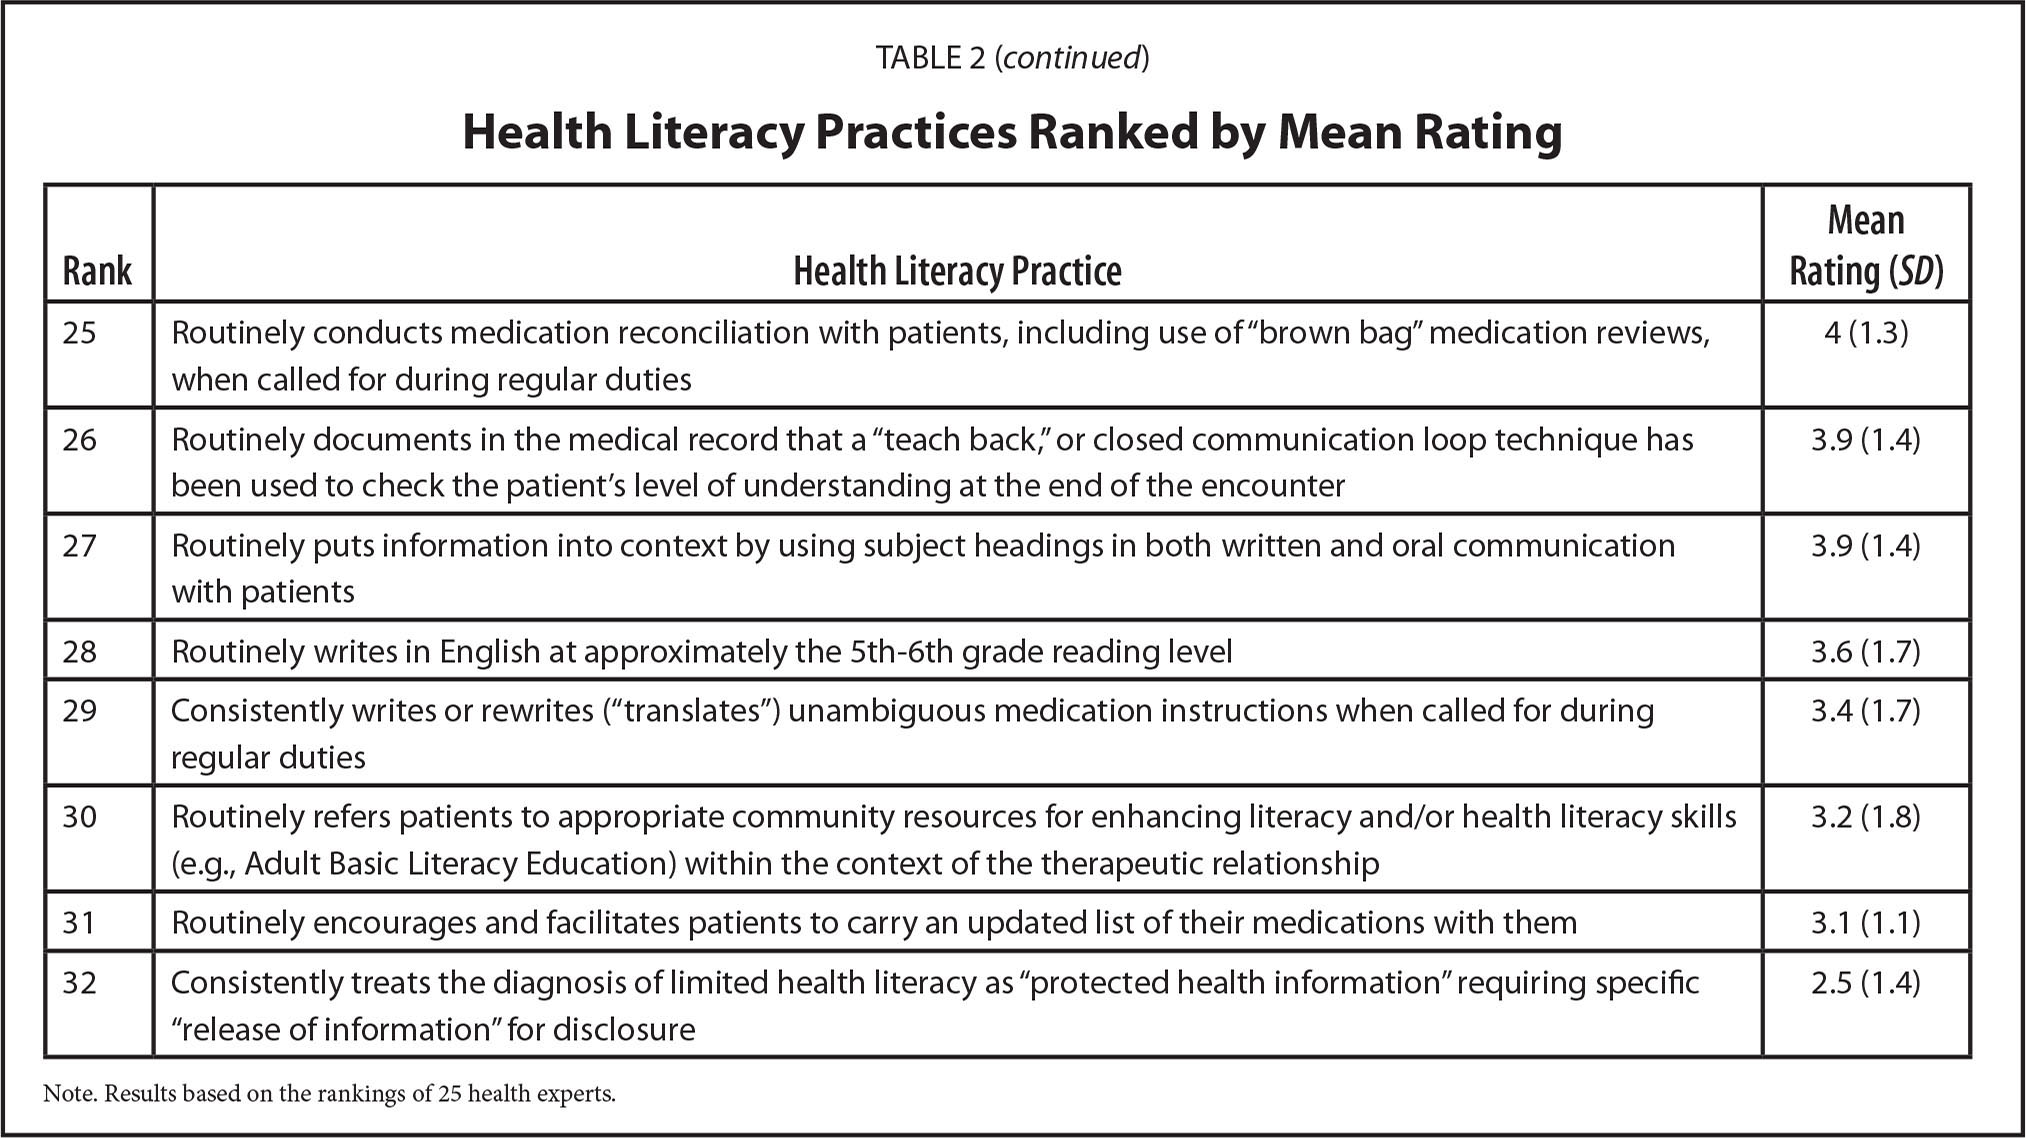 Health Literacy Practices Ranked by Mean Rating